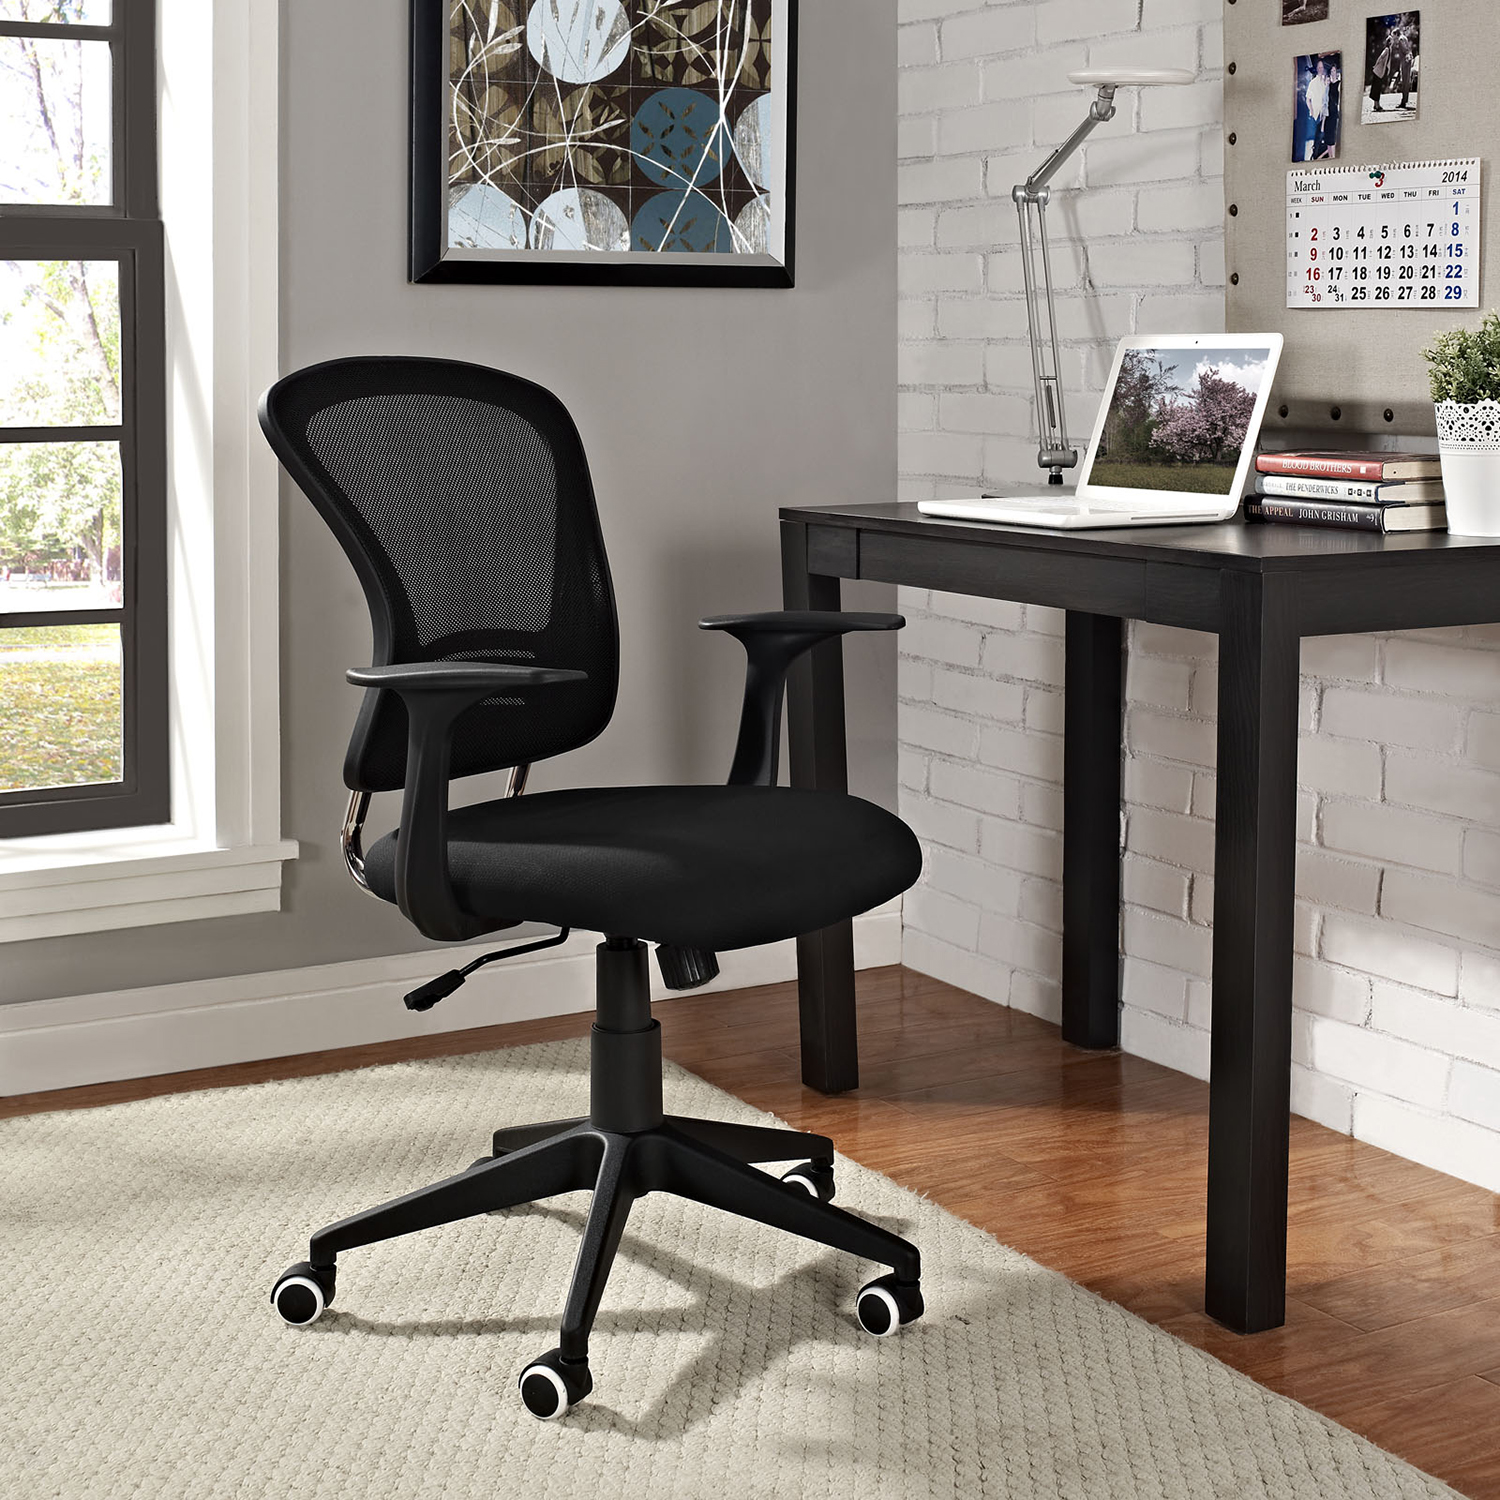 Poise Office Chair - Height Adjustment - EEI-1248